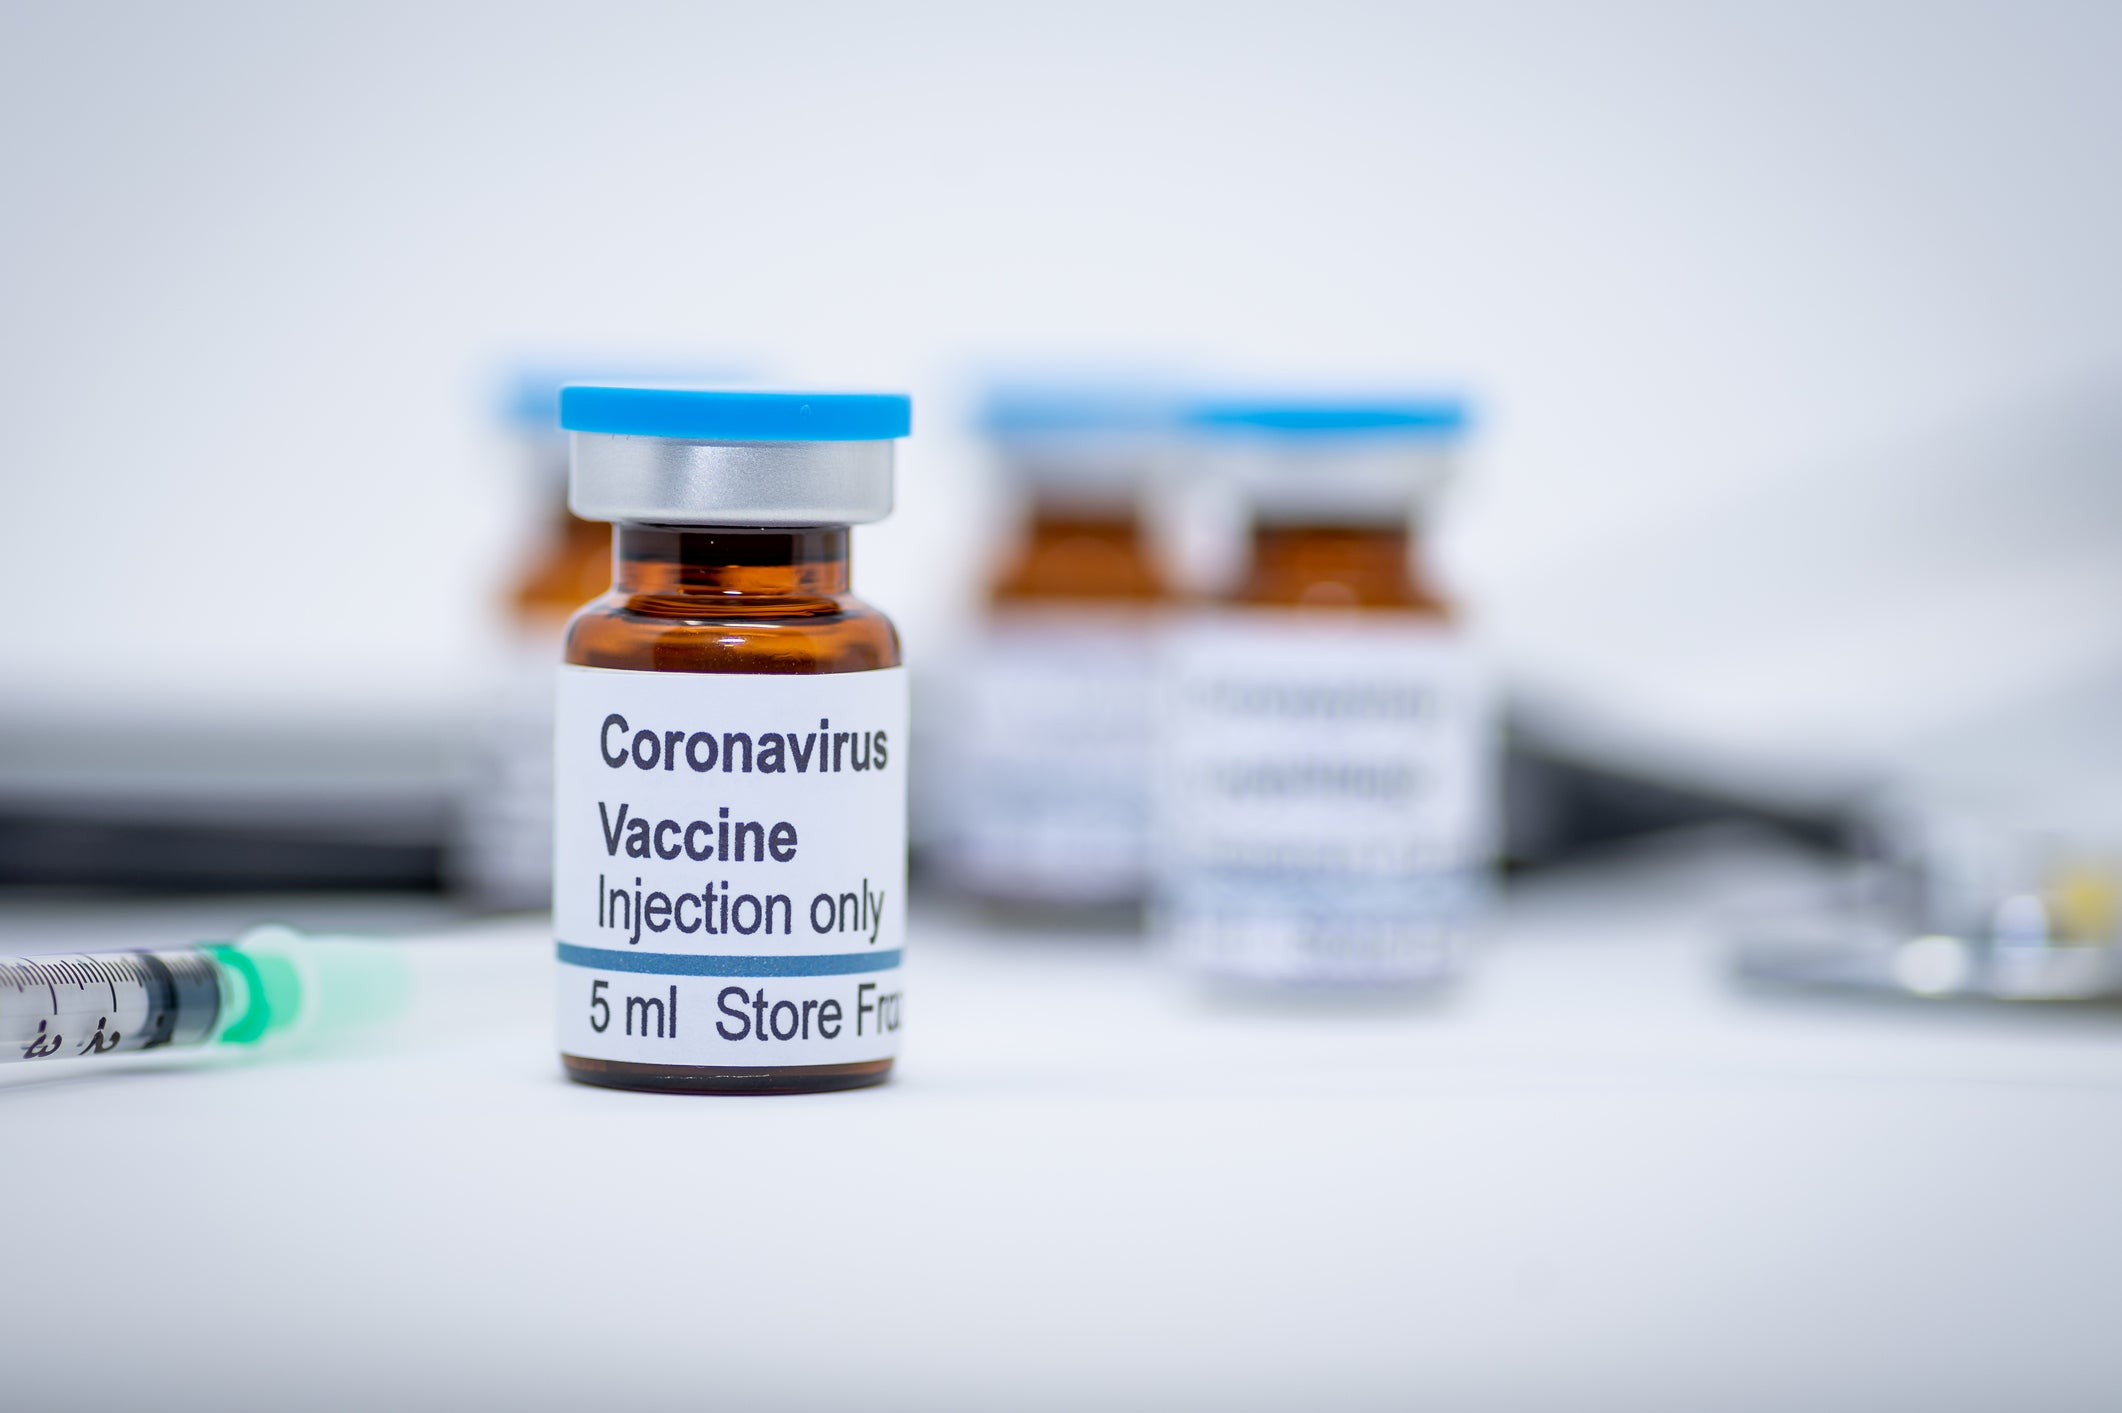 Scientists in Israel likely to announce it developed coronavirus vaccine: Report